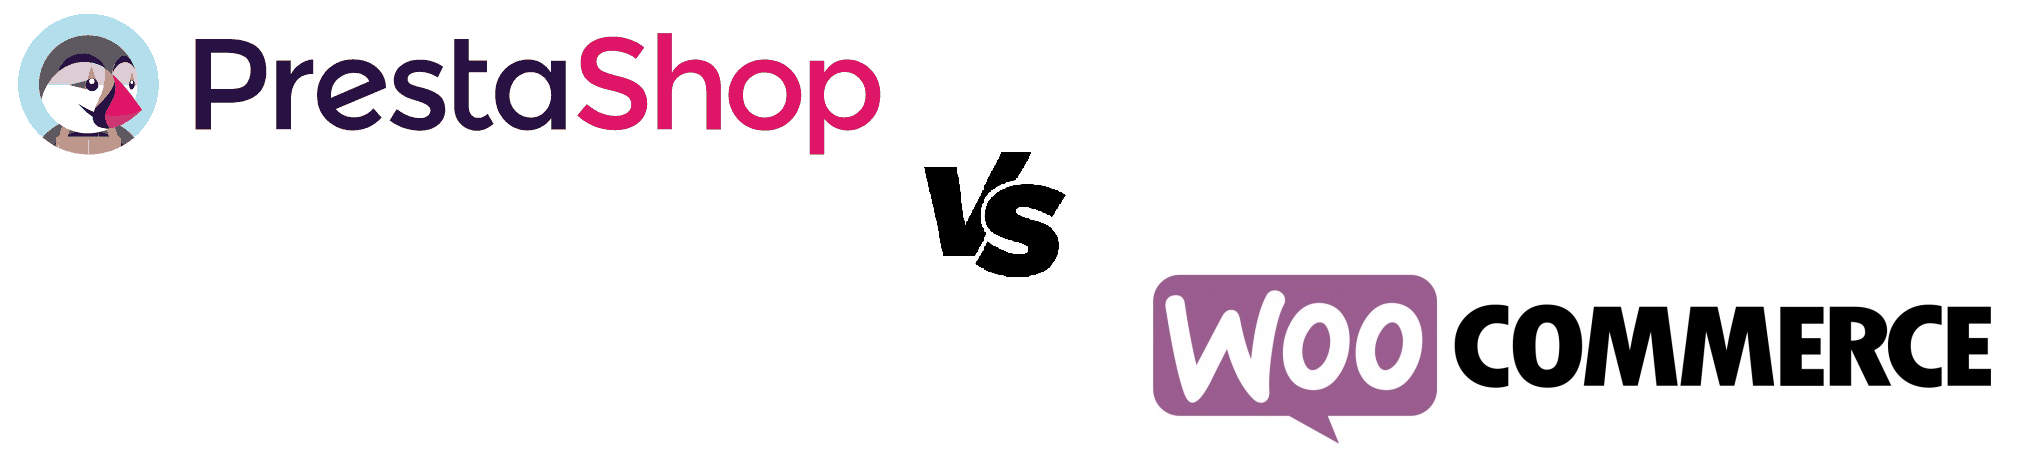 WooCommerce vs Prestashop: Advantages and Disadvantages